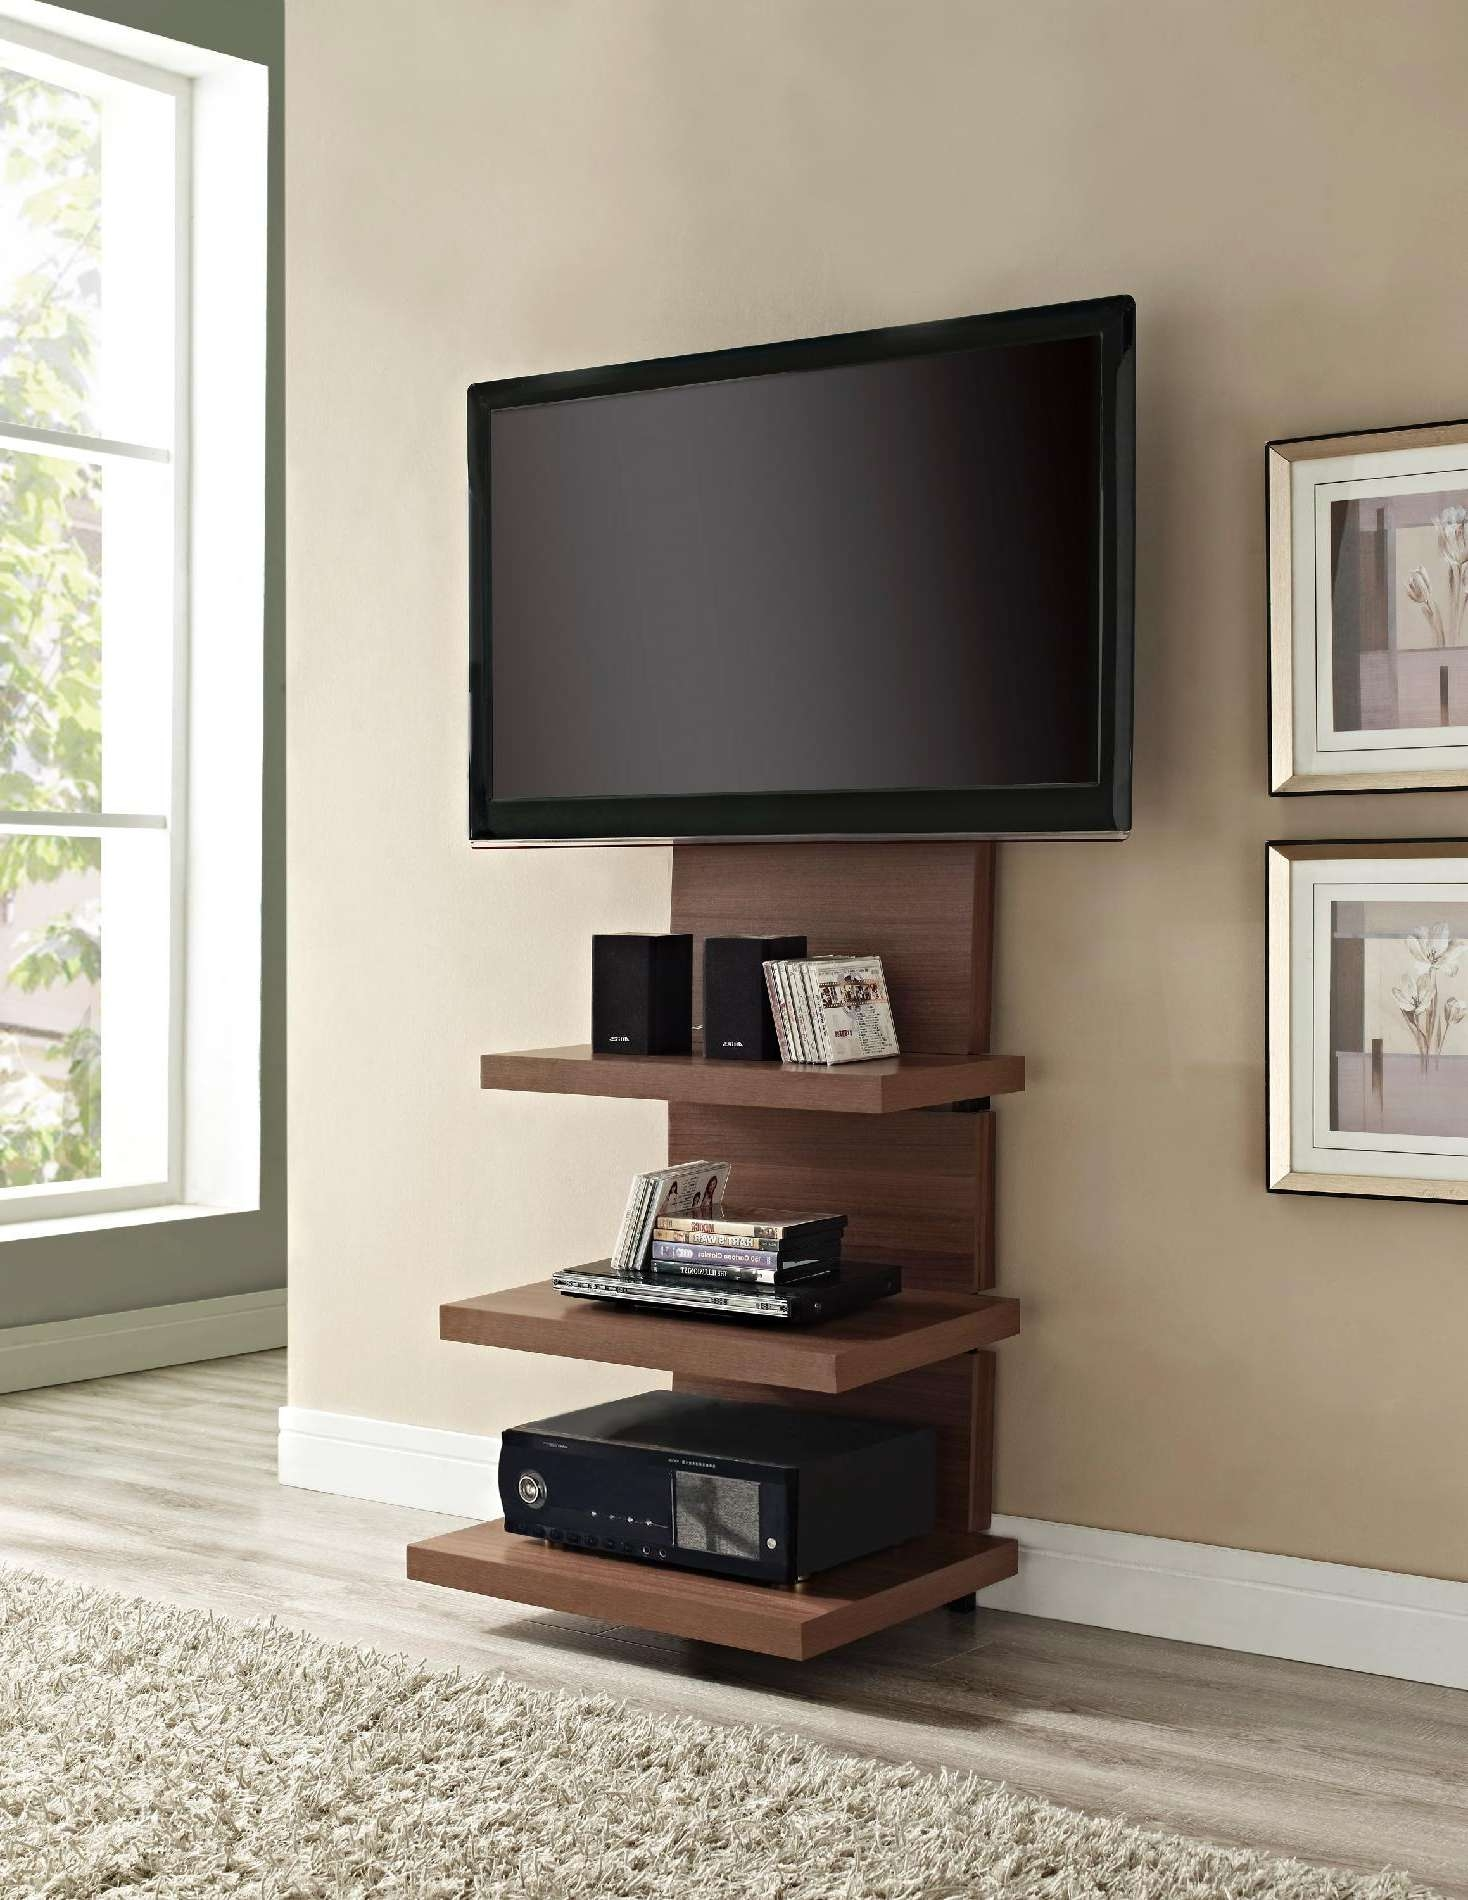 Chic And Modern Tv Wall Mount Ideas For Living Room Stands With For Modern Tv Stands With Mount (View 3 of 15)